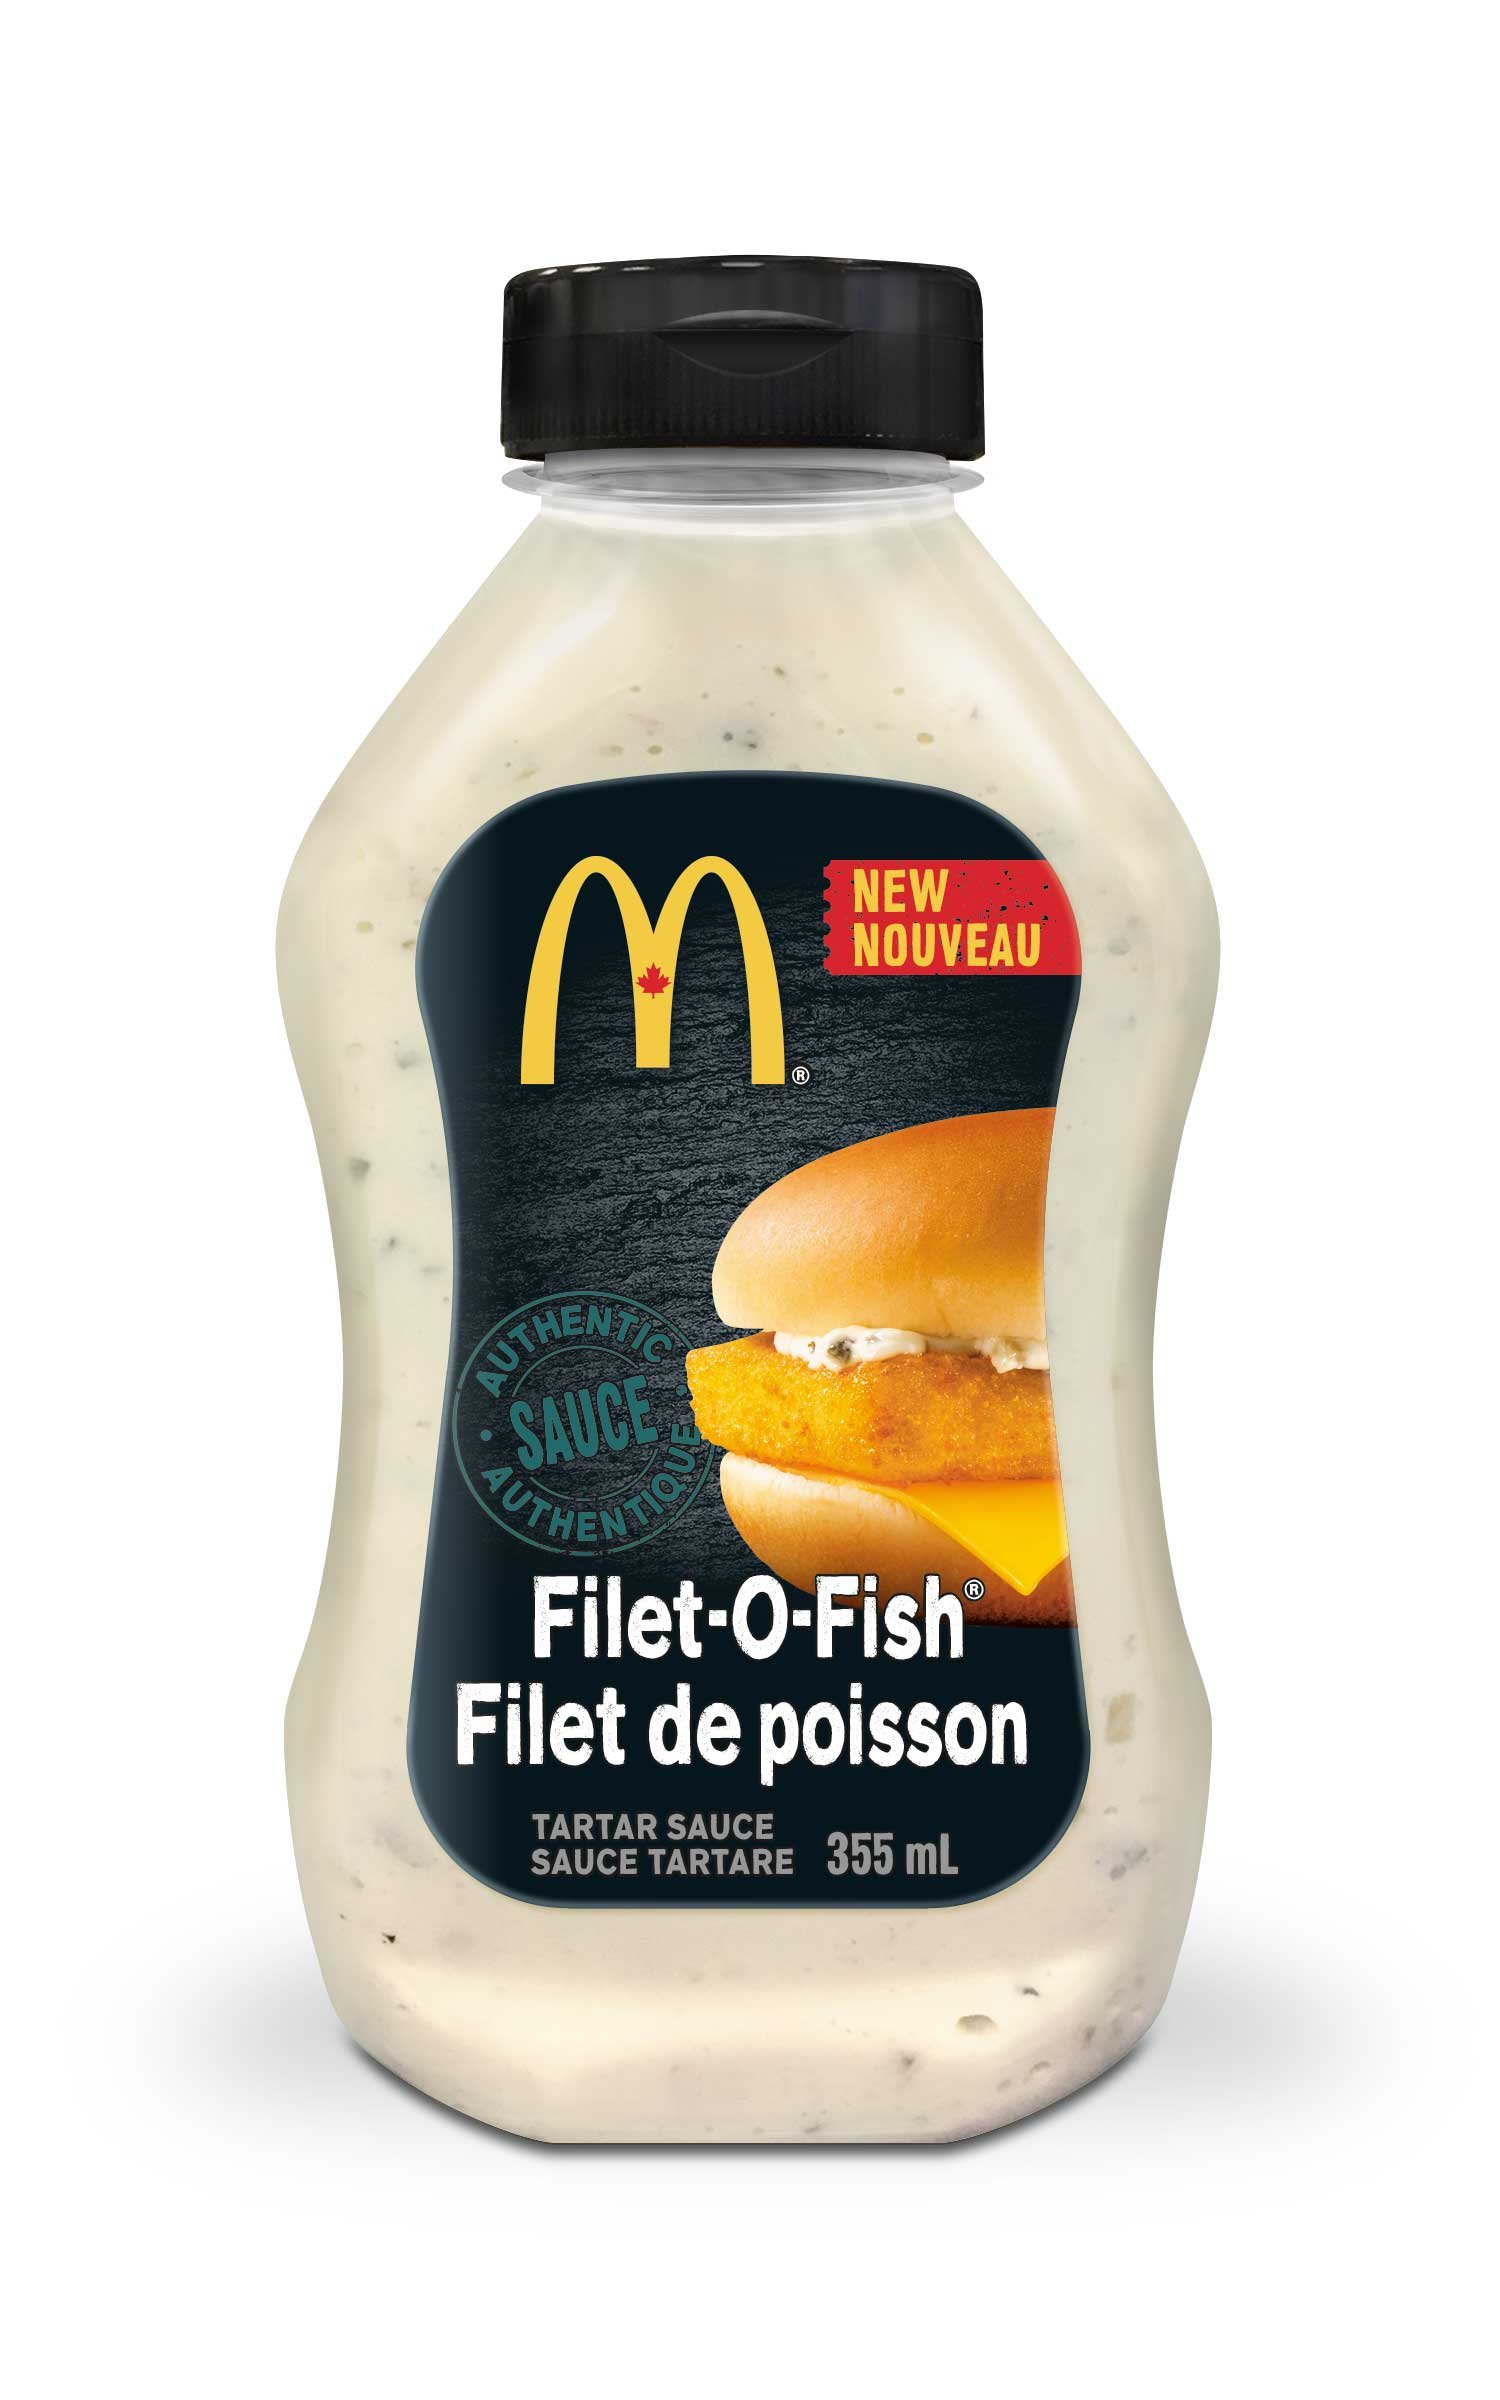 Mcdonald 39 s big mac sauce 1 count 355ml 12 for Mcdonalds fish fillet